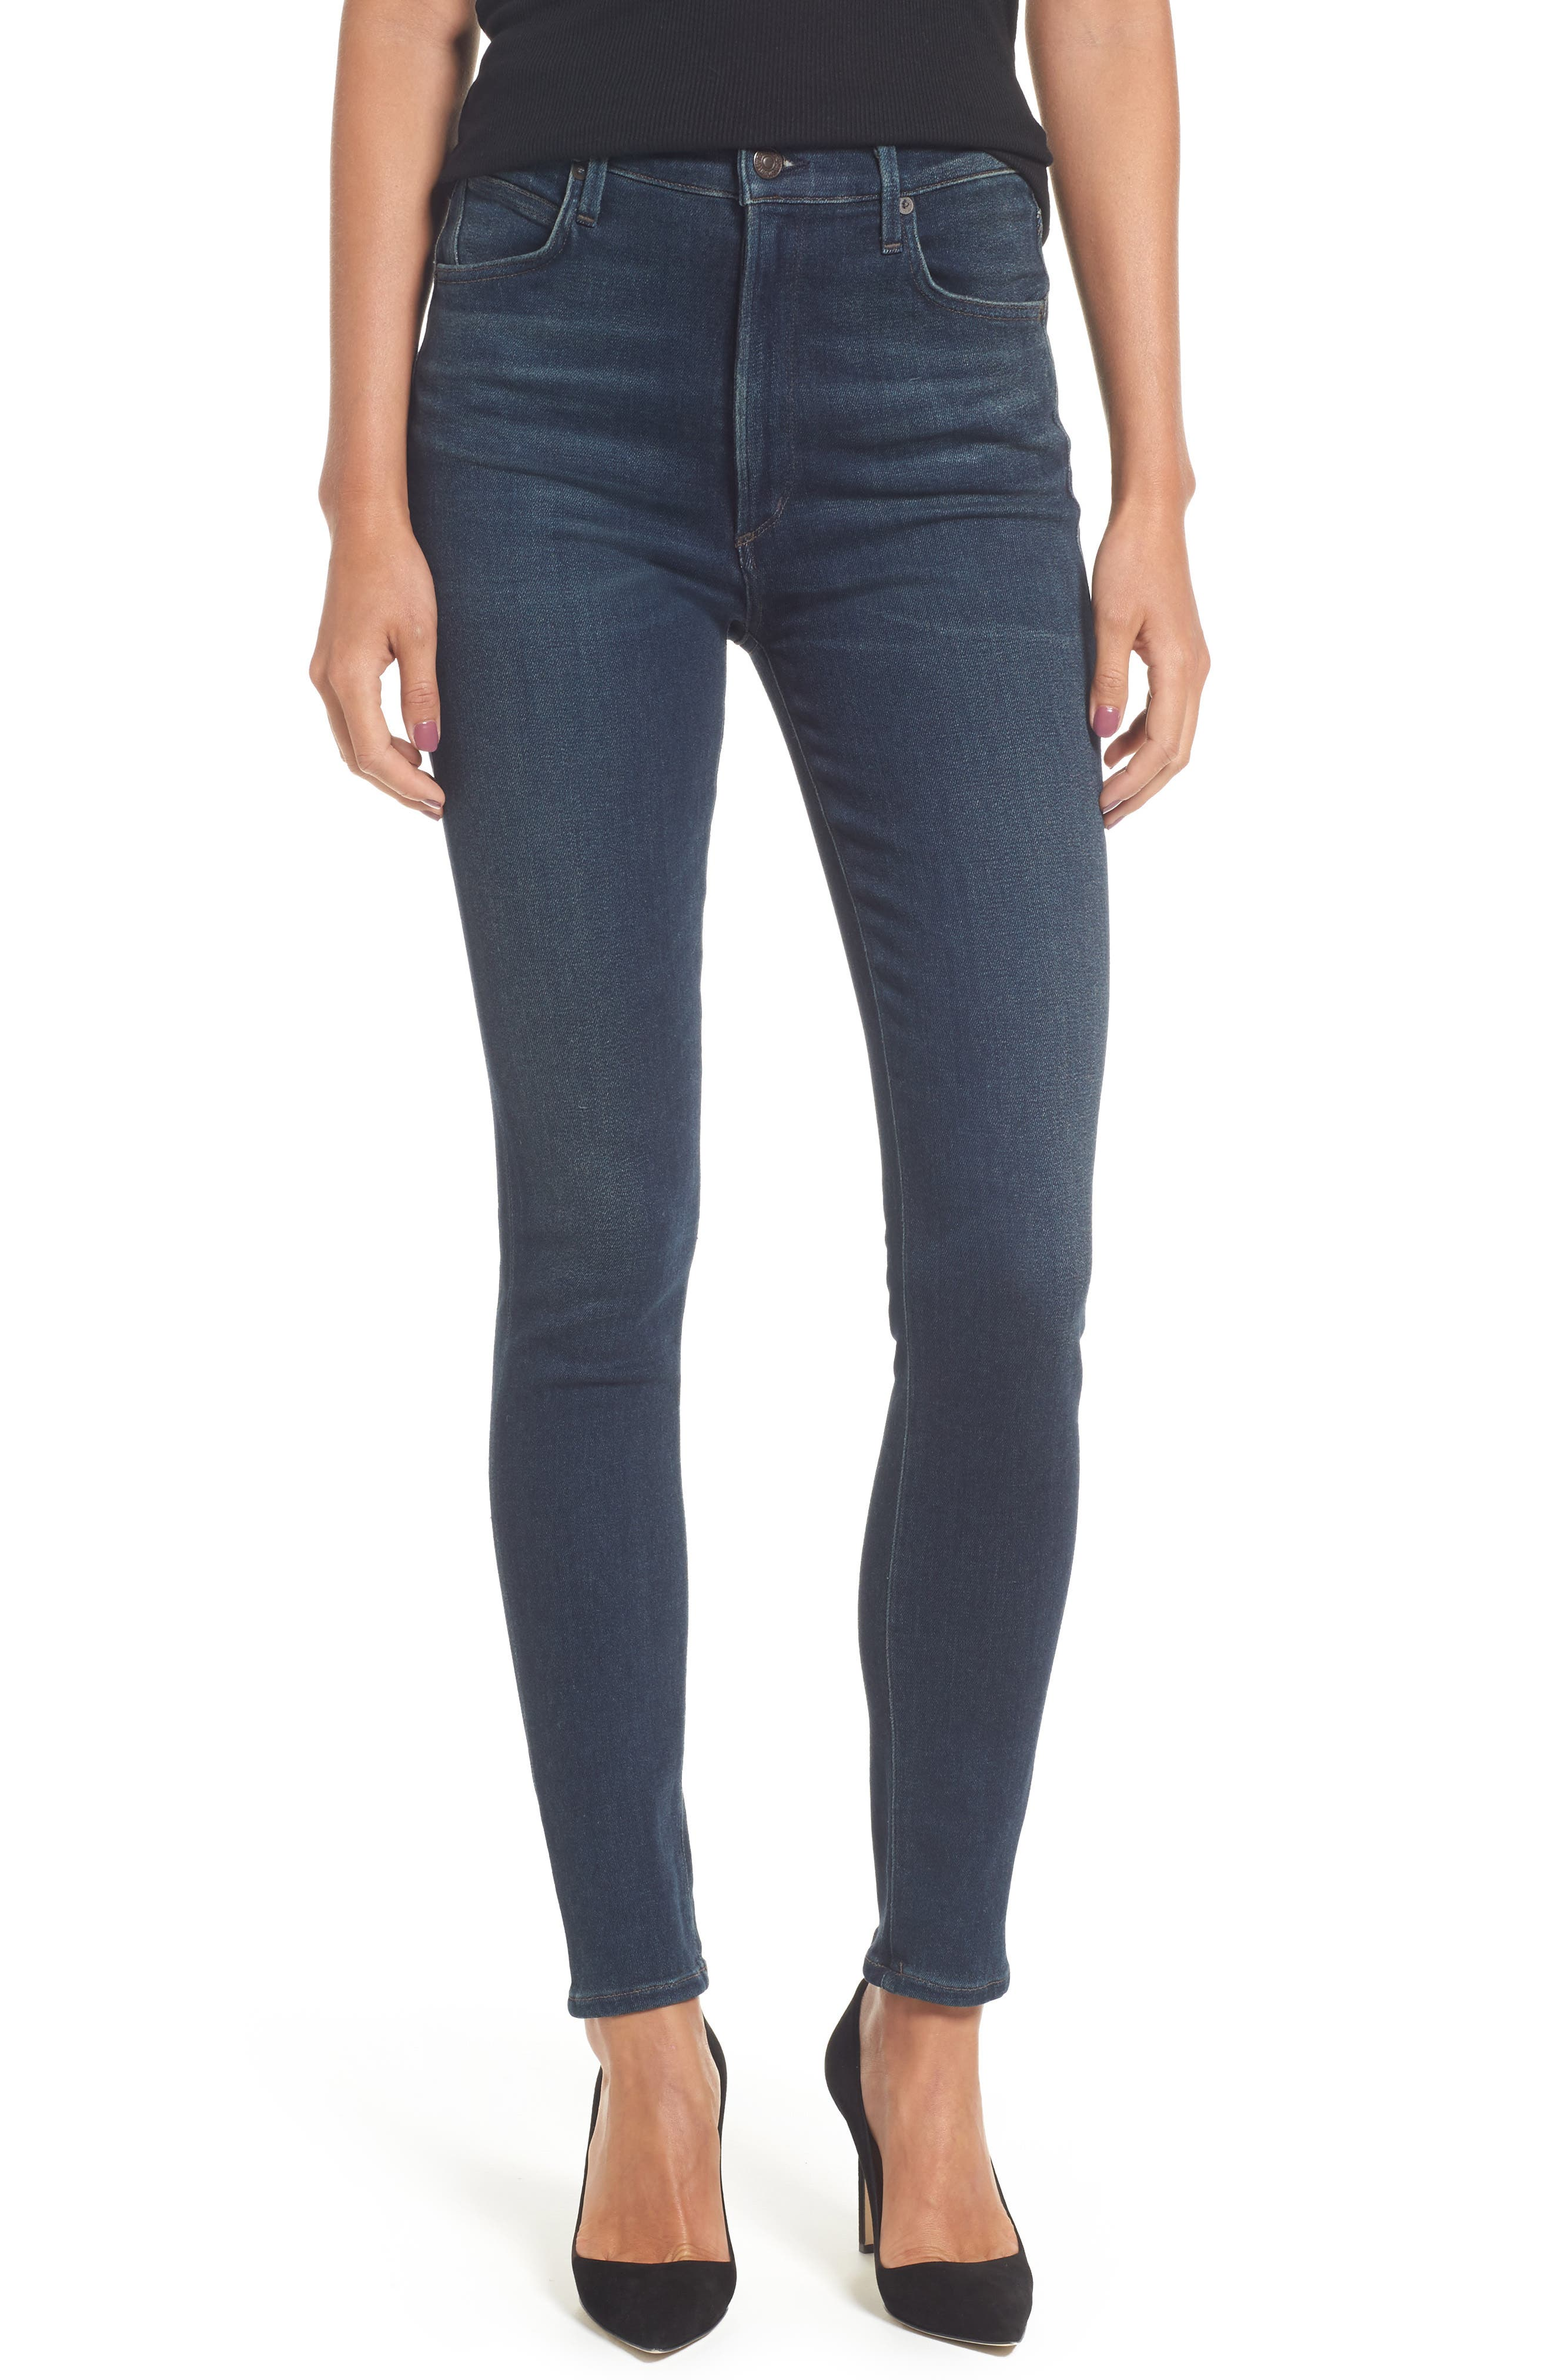 Chrissy High Waist Skinny Jeans,                             Main thumbnail 1, color,                             405